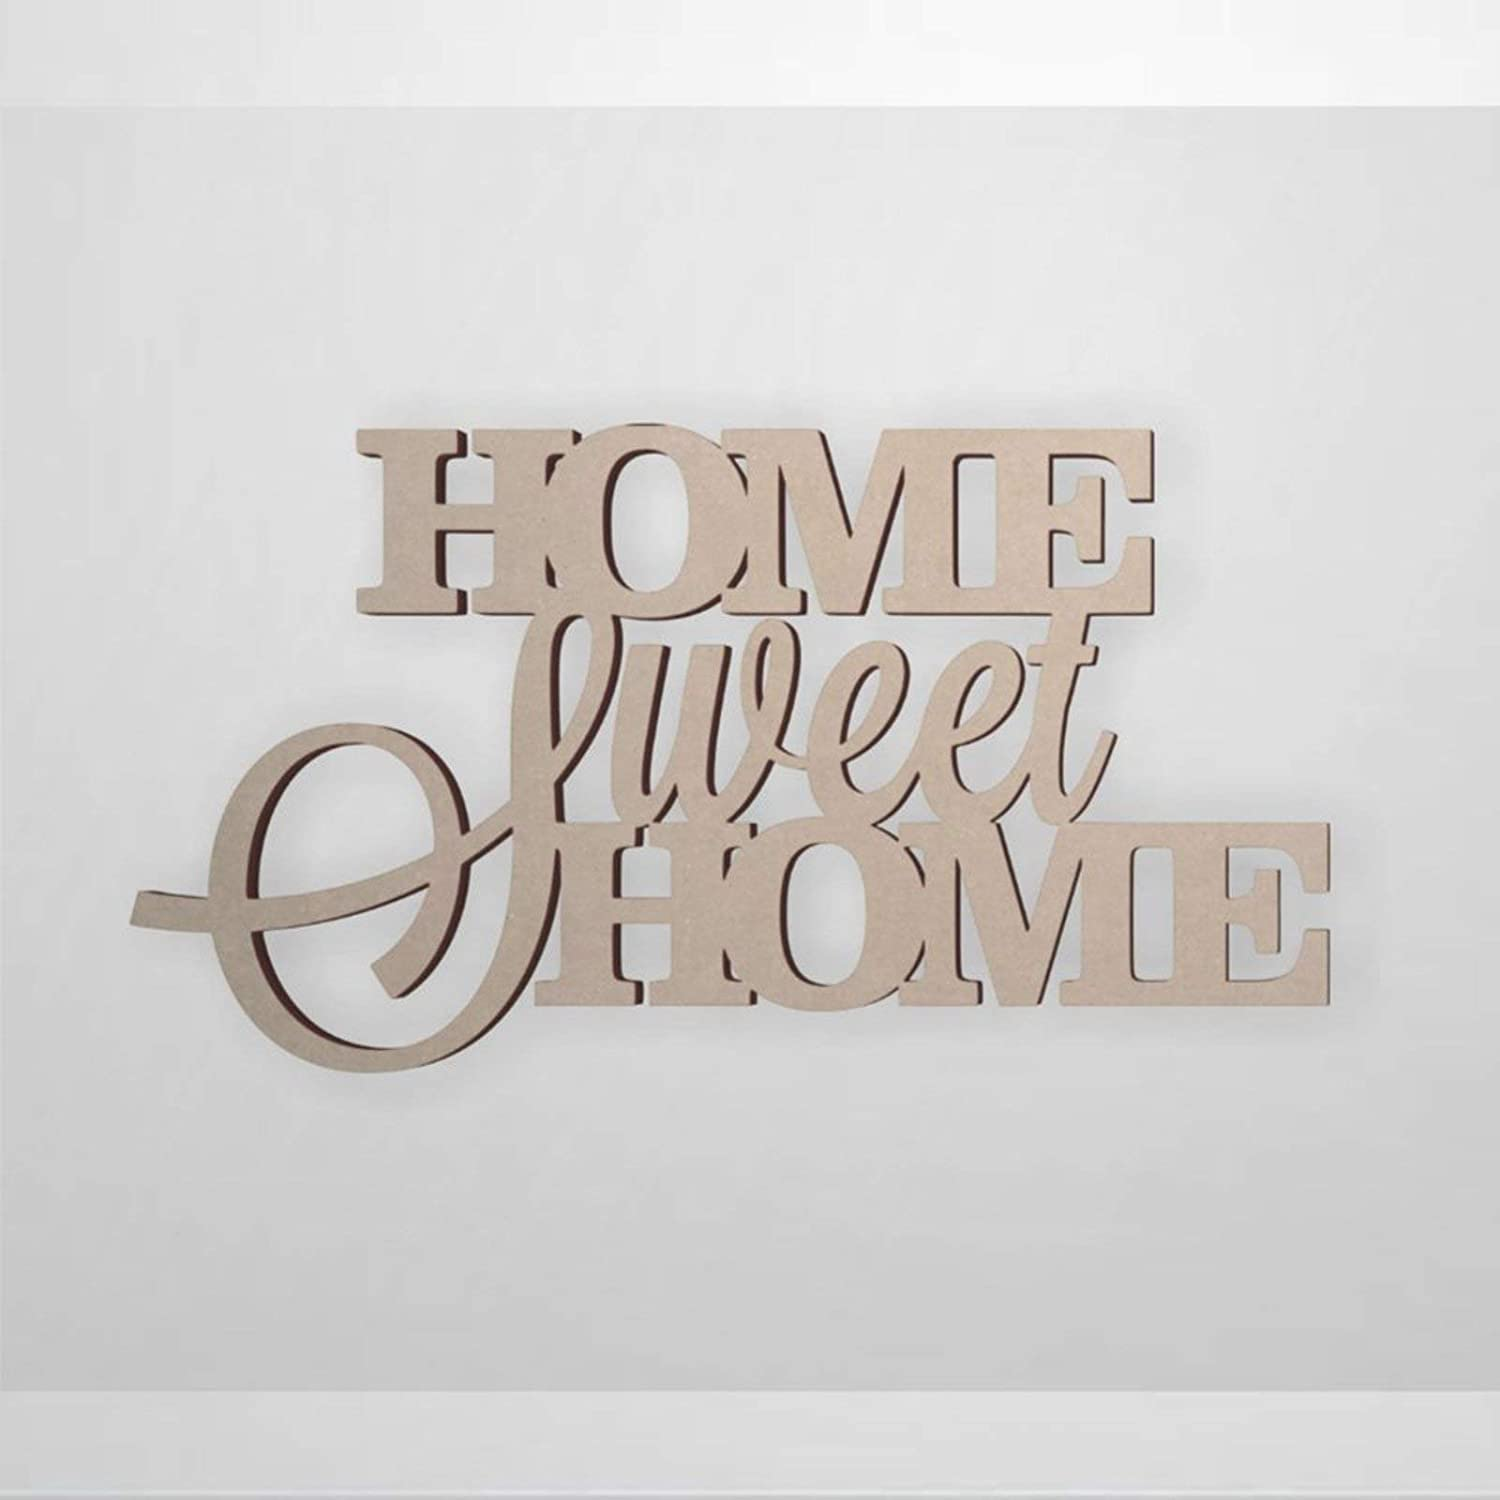 BYRON HOYLE Home Sweet Home Wood Craft,Unfinished Wooden Cutout Art,Inspirational Farmhouse Wall Plaque,Rustic Home Decor for Living Room,Nursery,Bedroom,Porch,Gallery Wall